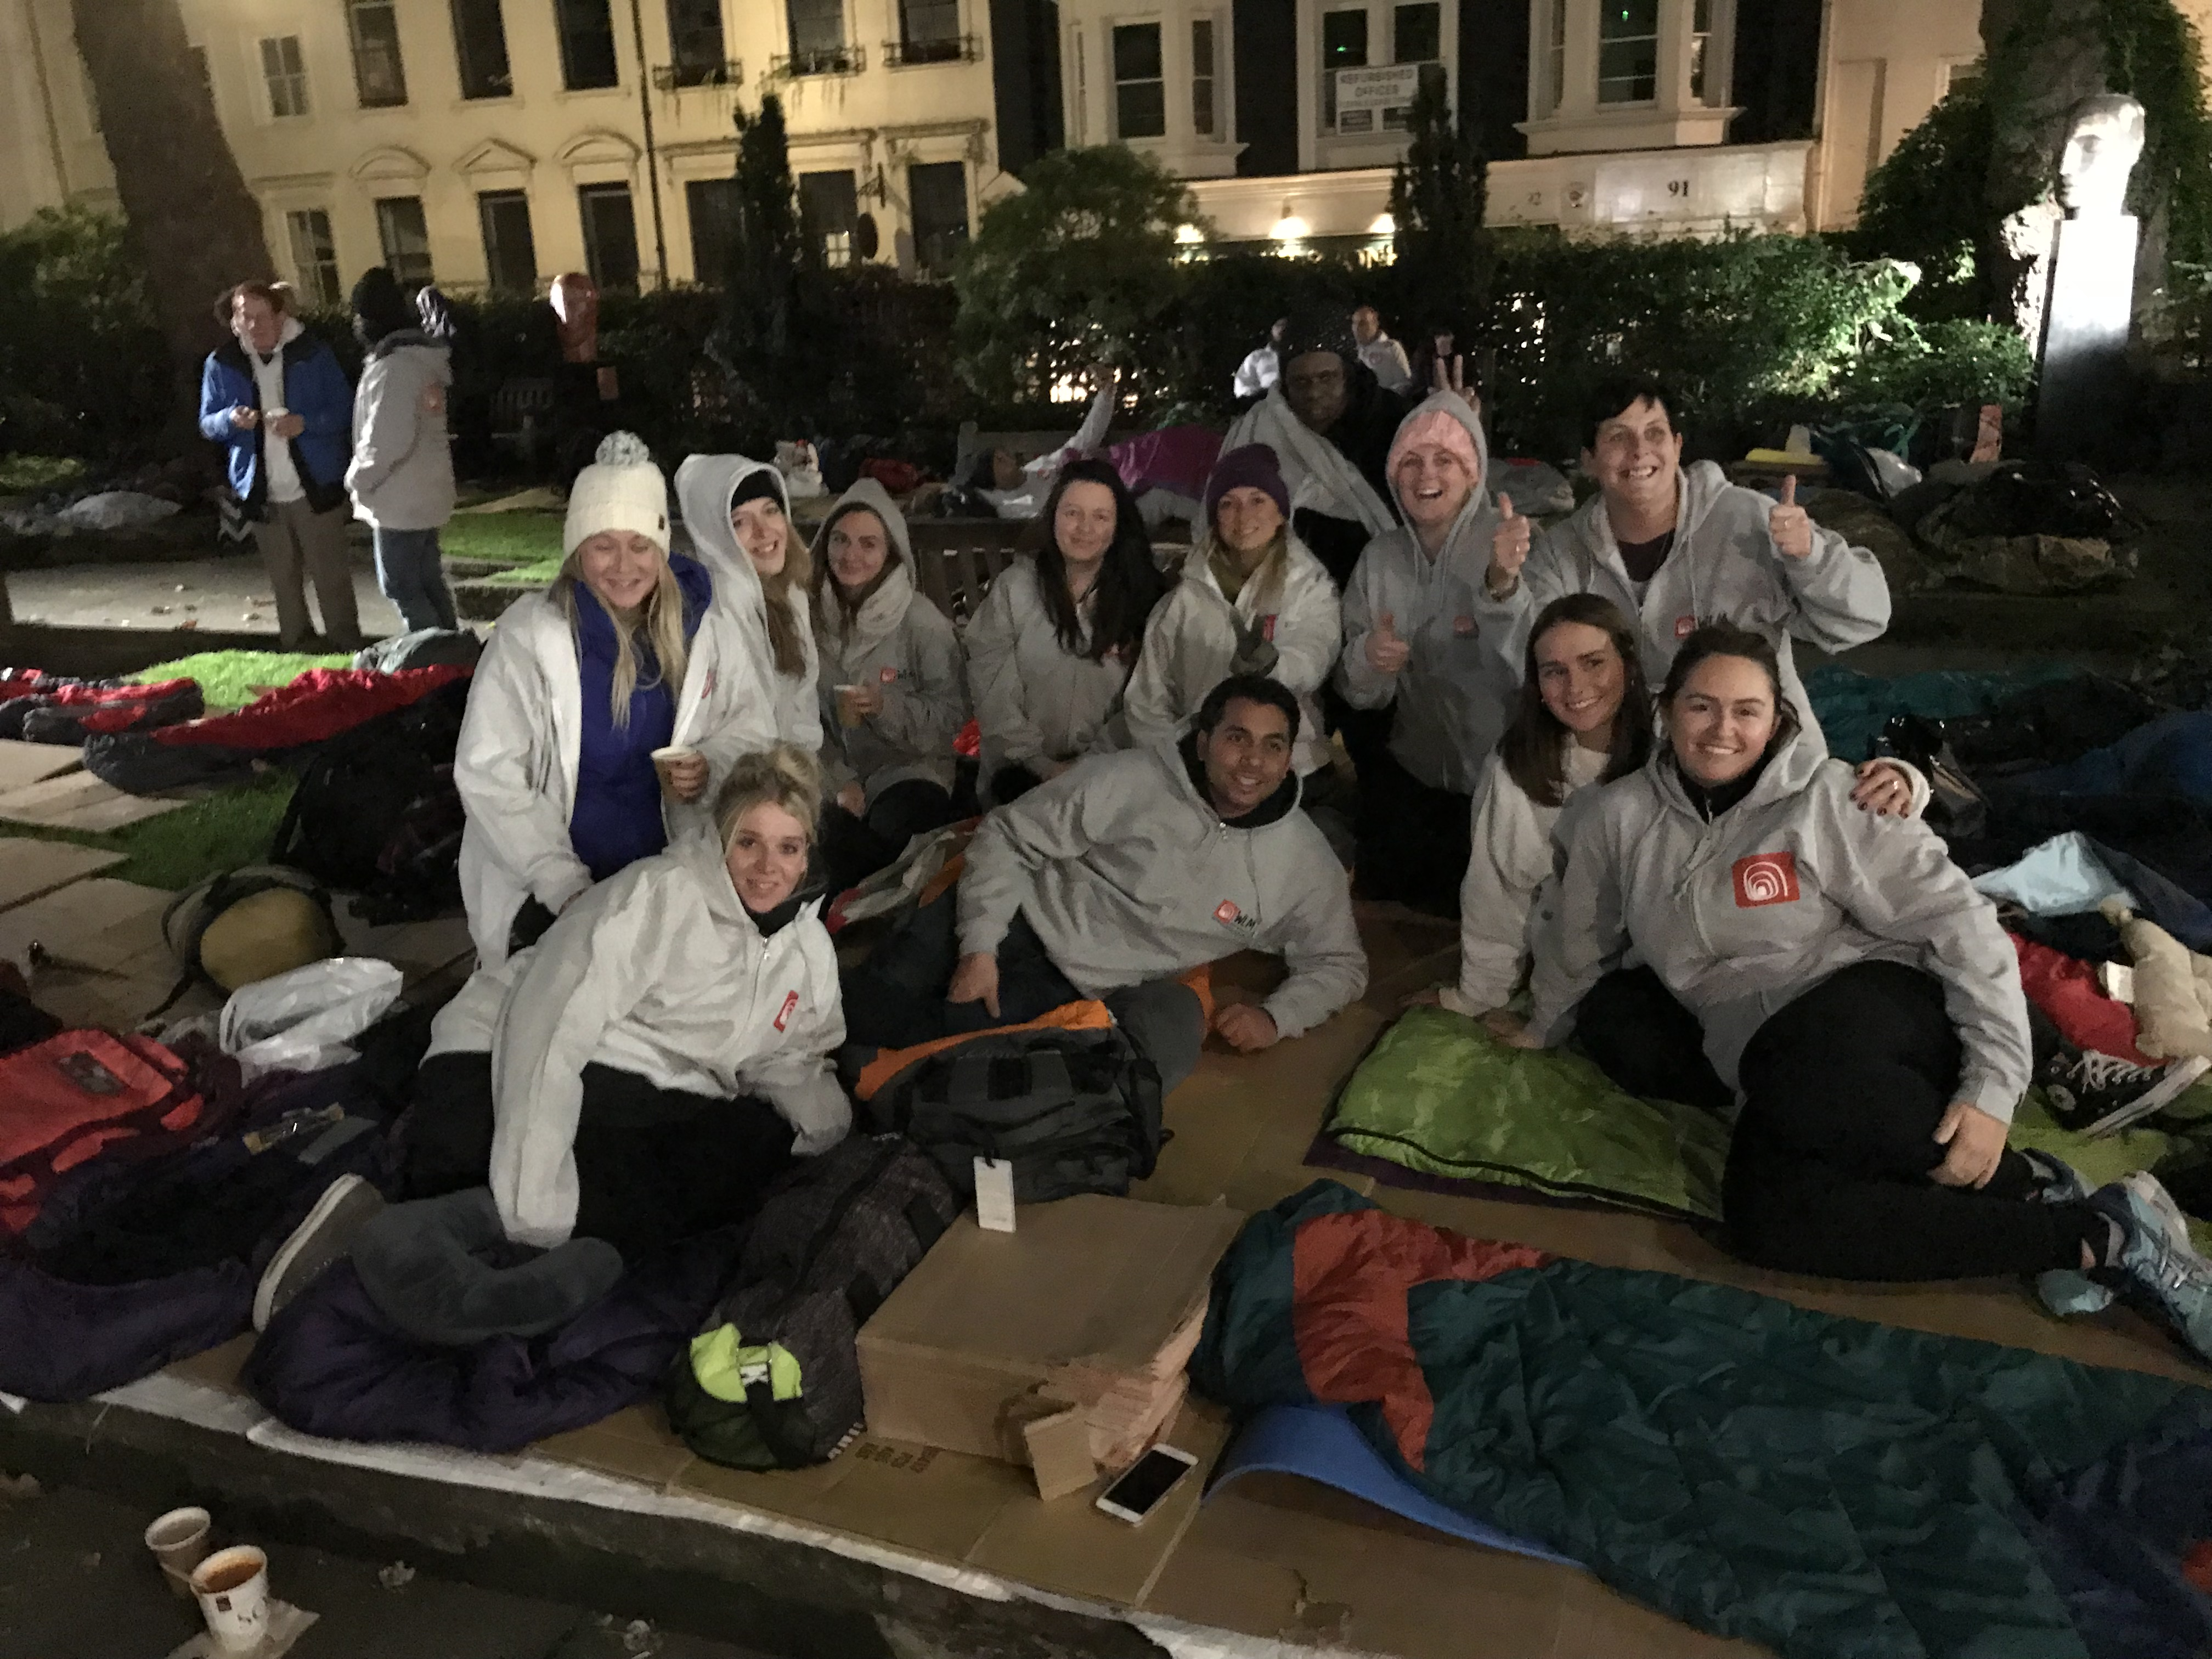 West London Mission Sleep Out 2019